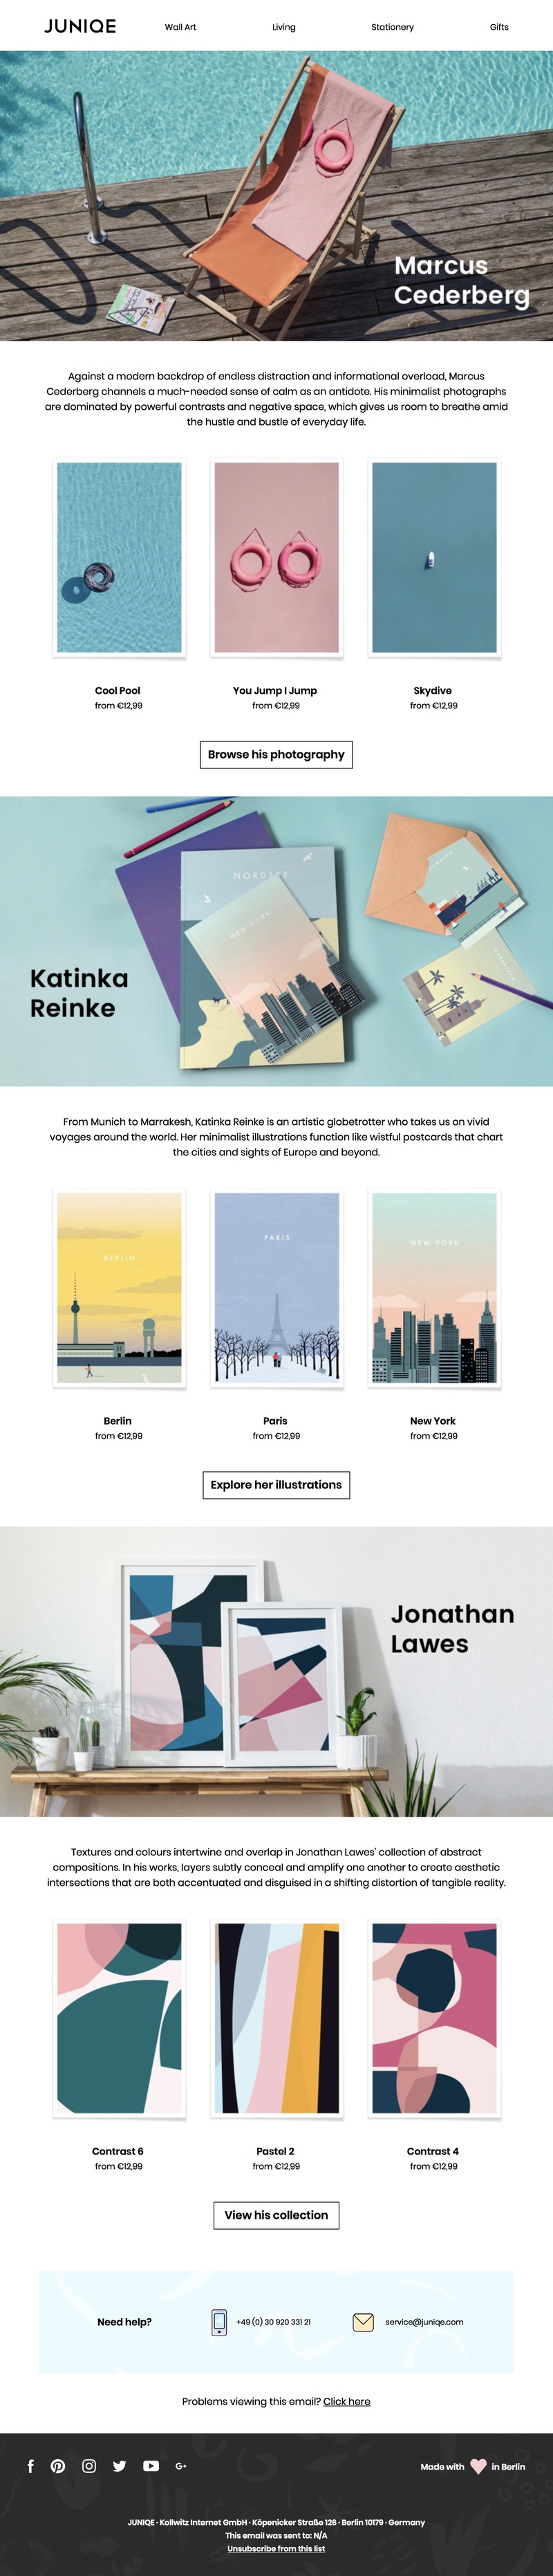 Modular email template example of the Junique Artist Showcase newsletter